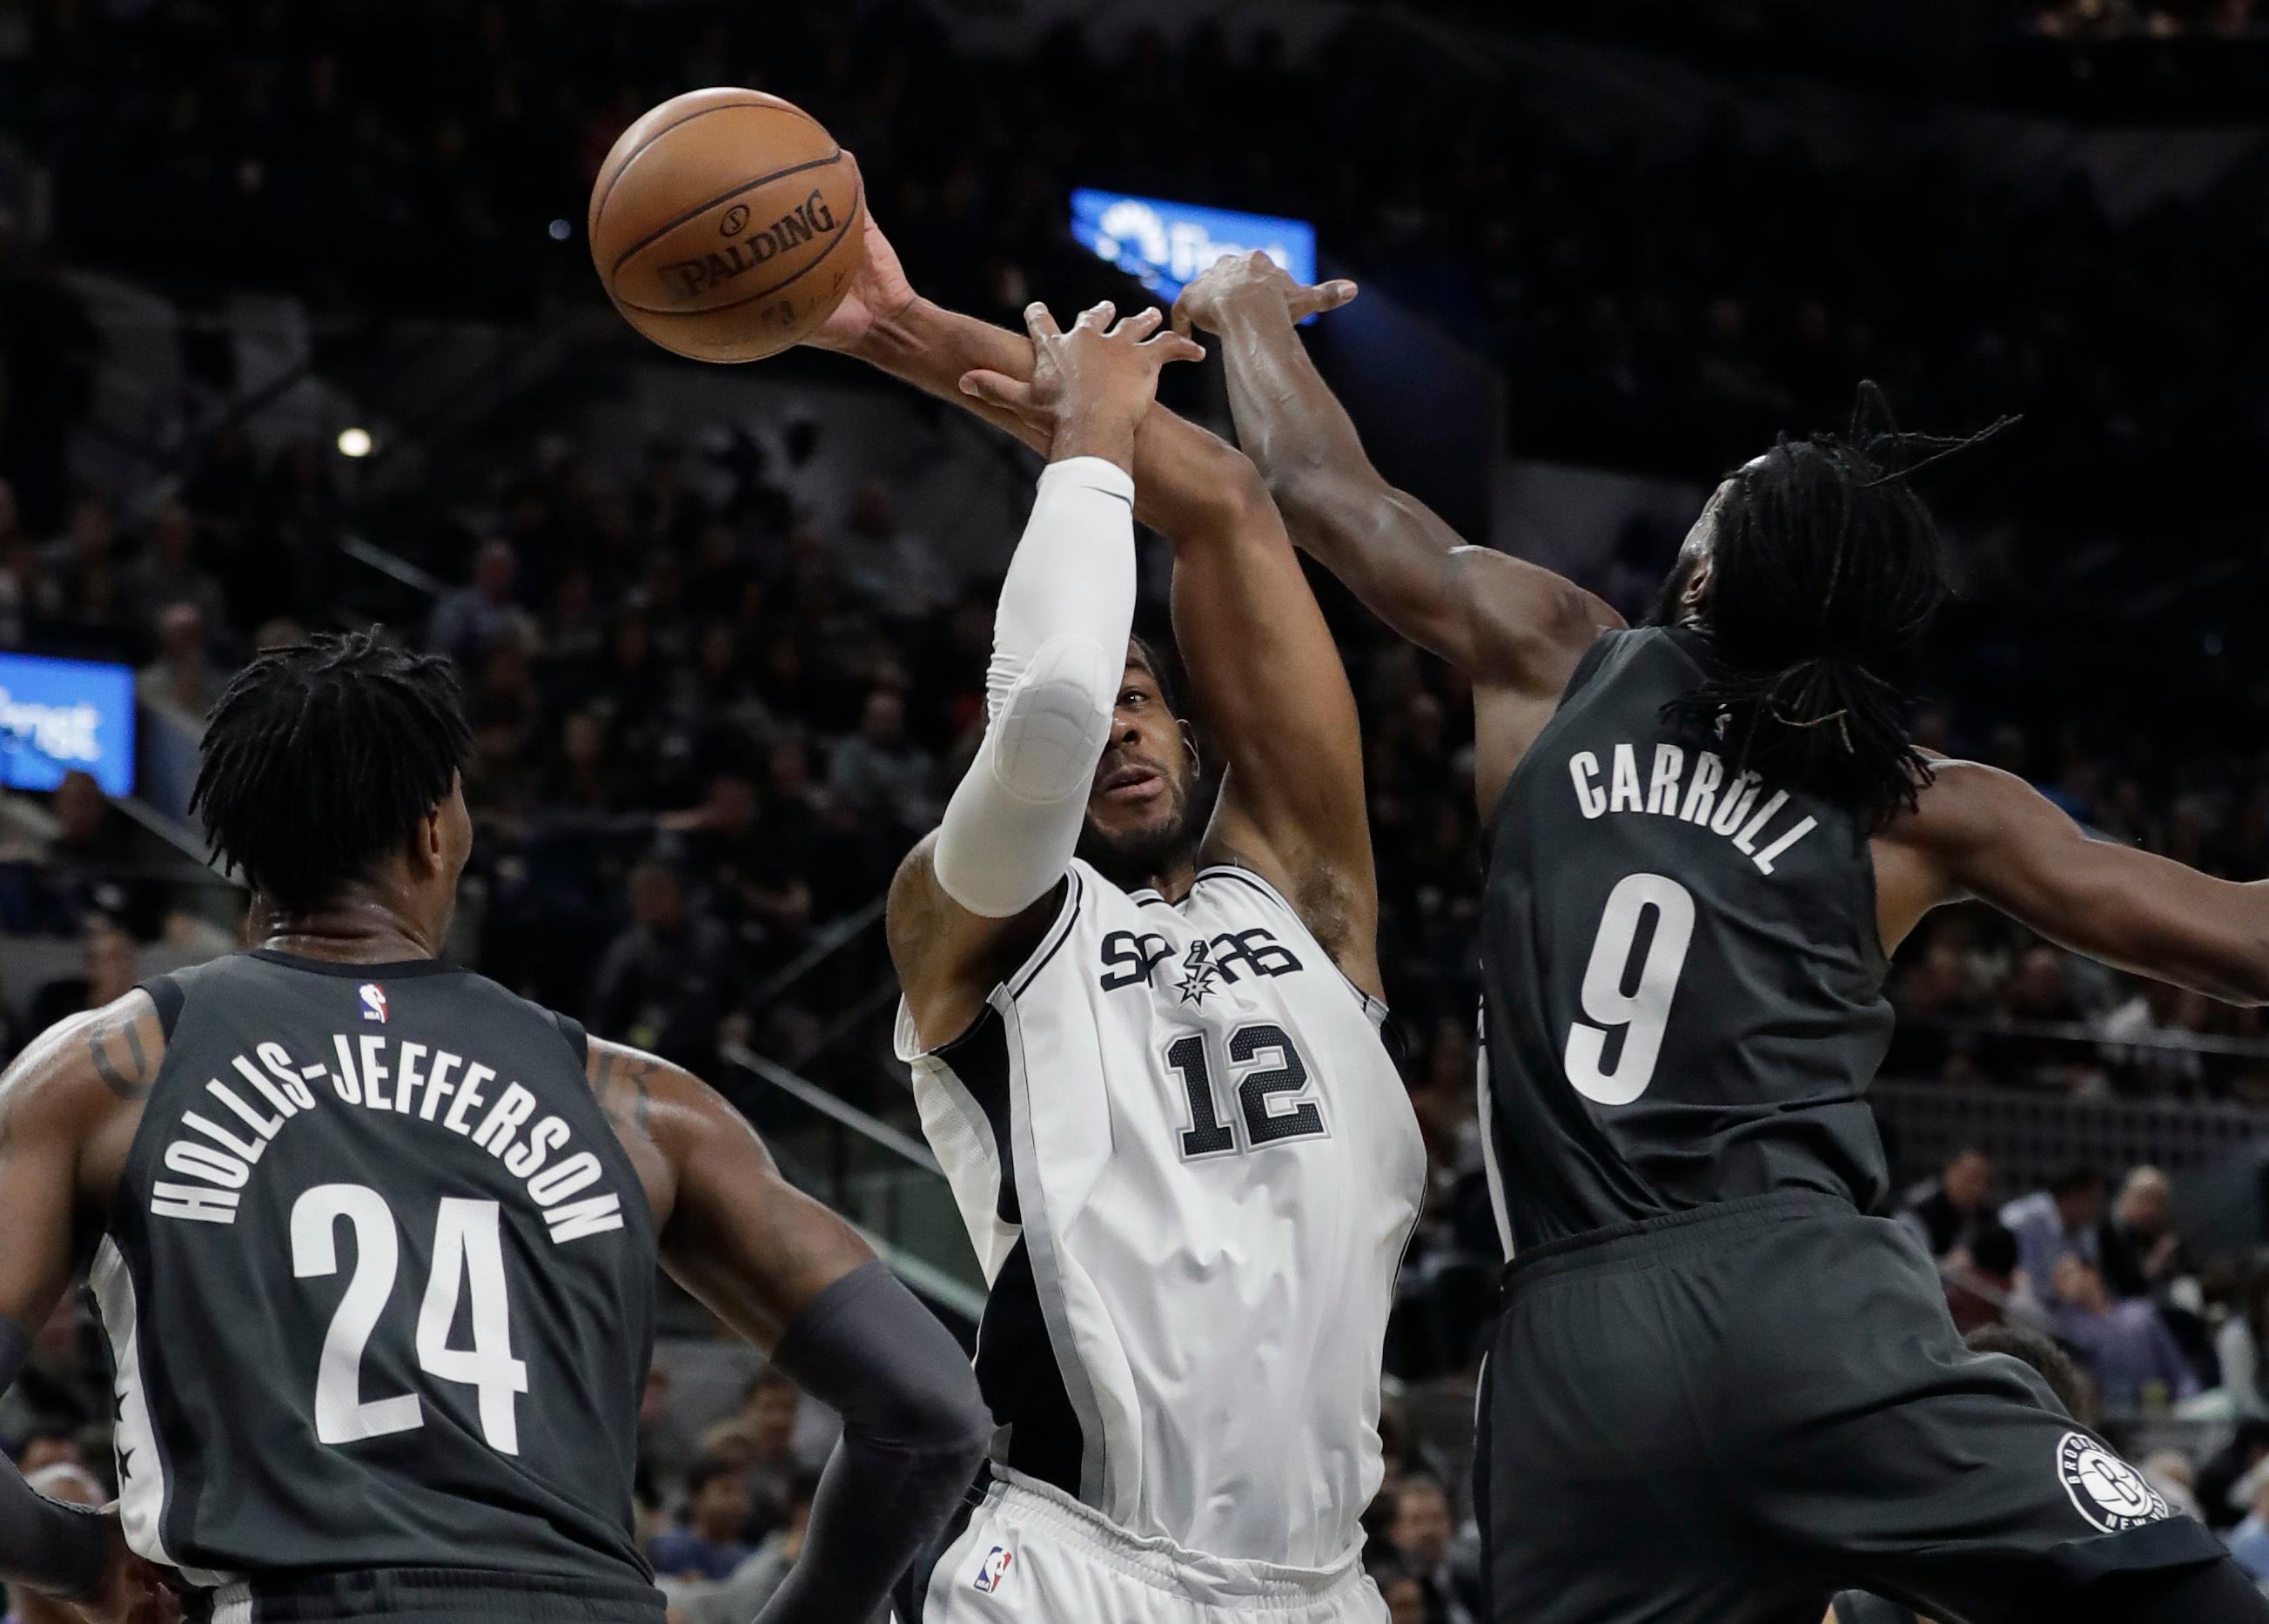 San Antonio Spurs forward LaMarcus Aldridge (12) is pressured by Brooklyn Nets forward DeMarre Carroll (9) as he tries to score during the first half of an NBA basketball game, Tuesday, Dec. 26, 2017, in San Antonio. (AP Photo/Eric Gay)